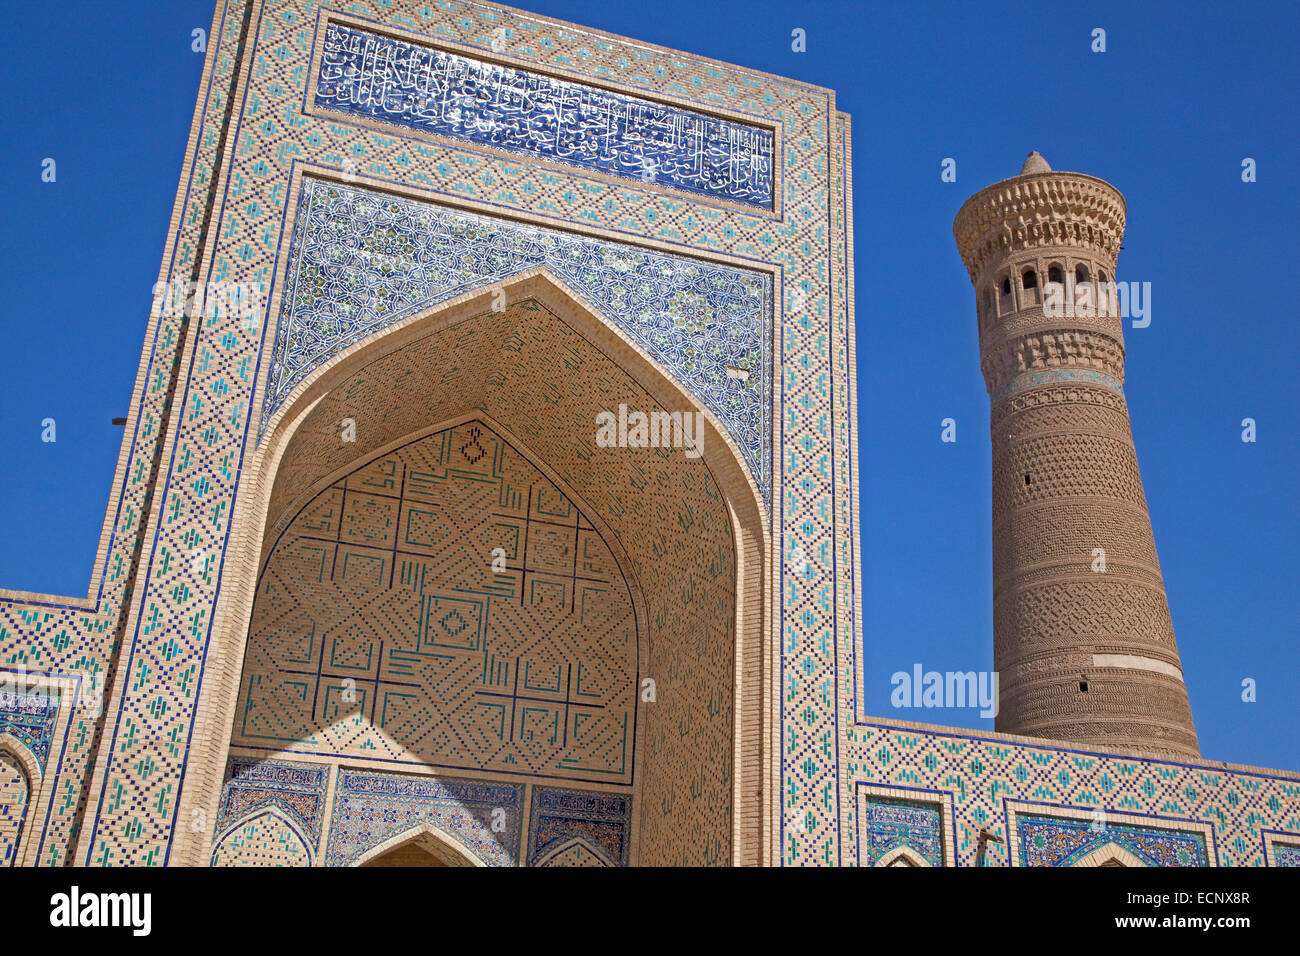 Tiled Iwan portal and brick minaret of the Kalyan Mosque, part of the Po-i-Kalyan Complex in Bukhara, Uzbekistan - Stock Image